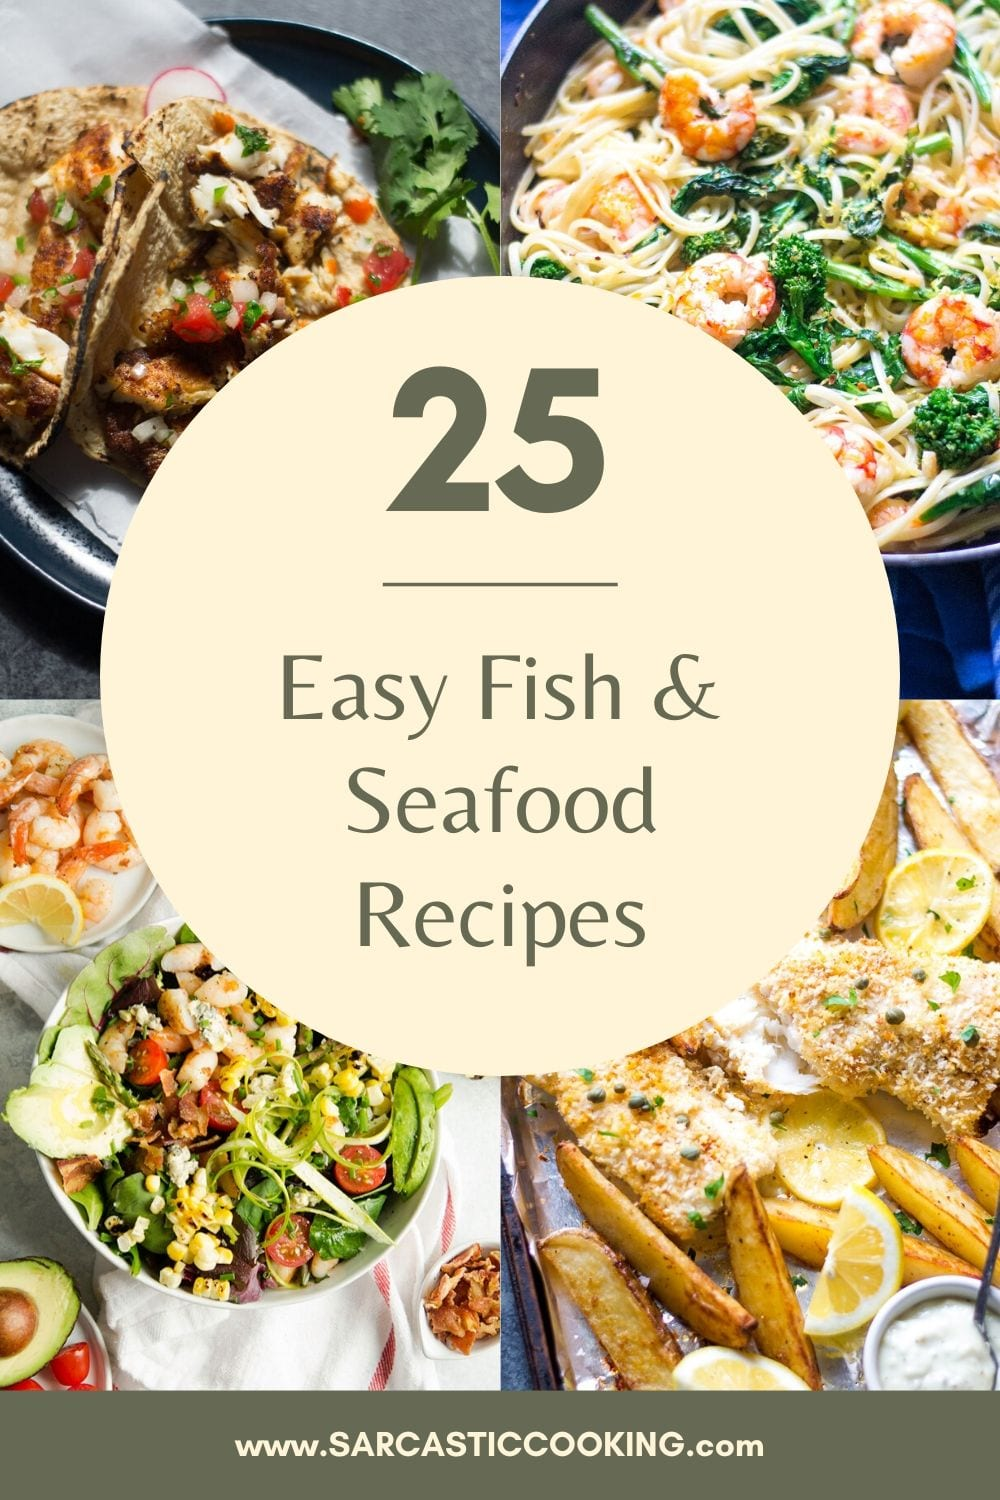 25 Easy Best Fish & Seafood Recipes | Sarcastic Cooking